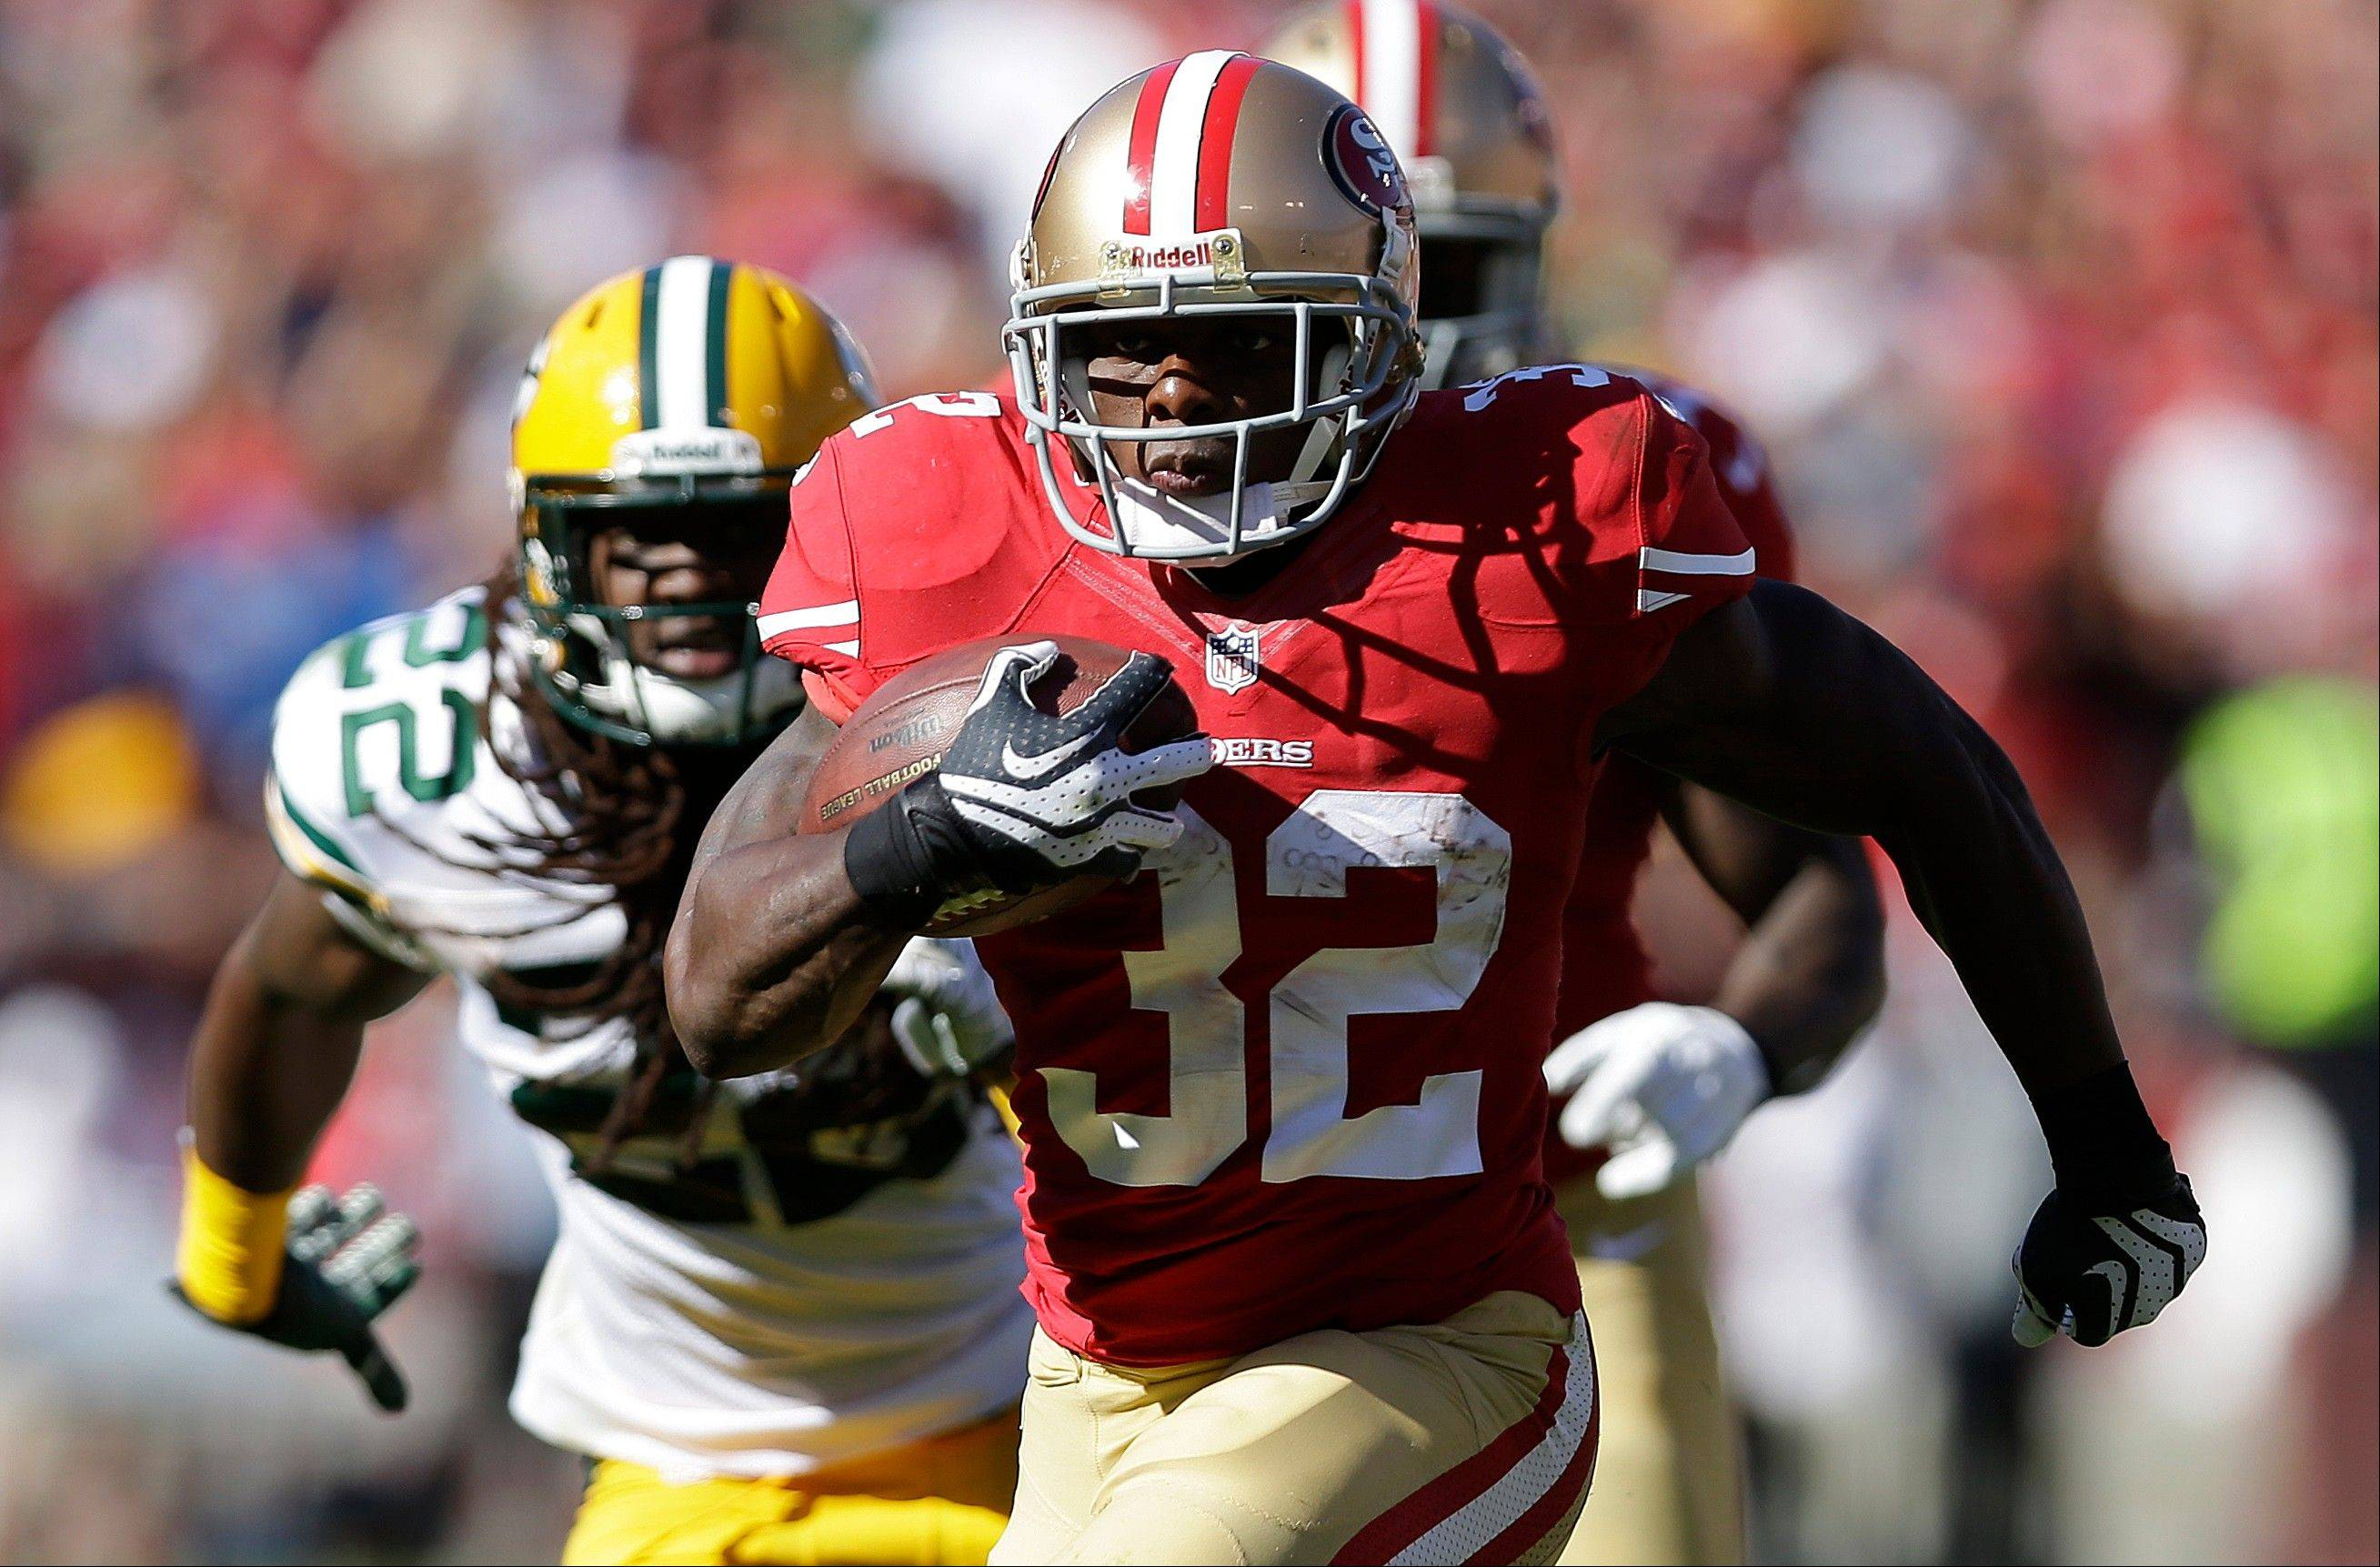 San Francisco 49ers running back Kendall Hunter (32) runs past Green Bay Packers defensive back Jerron McMillian (22) during the fourth quarter of an NFL football game in San Francisco, Sunday, Sept. 8, 2013.